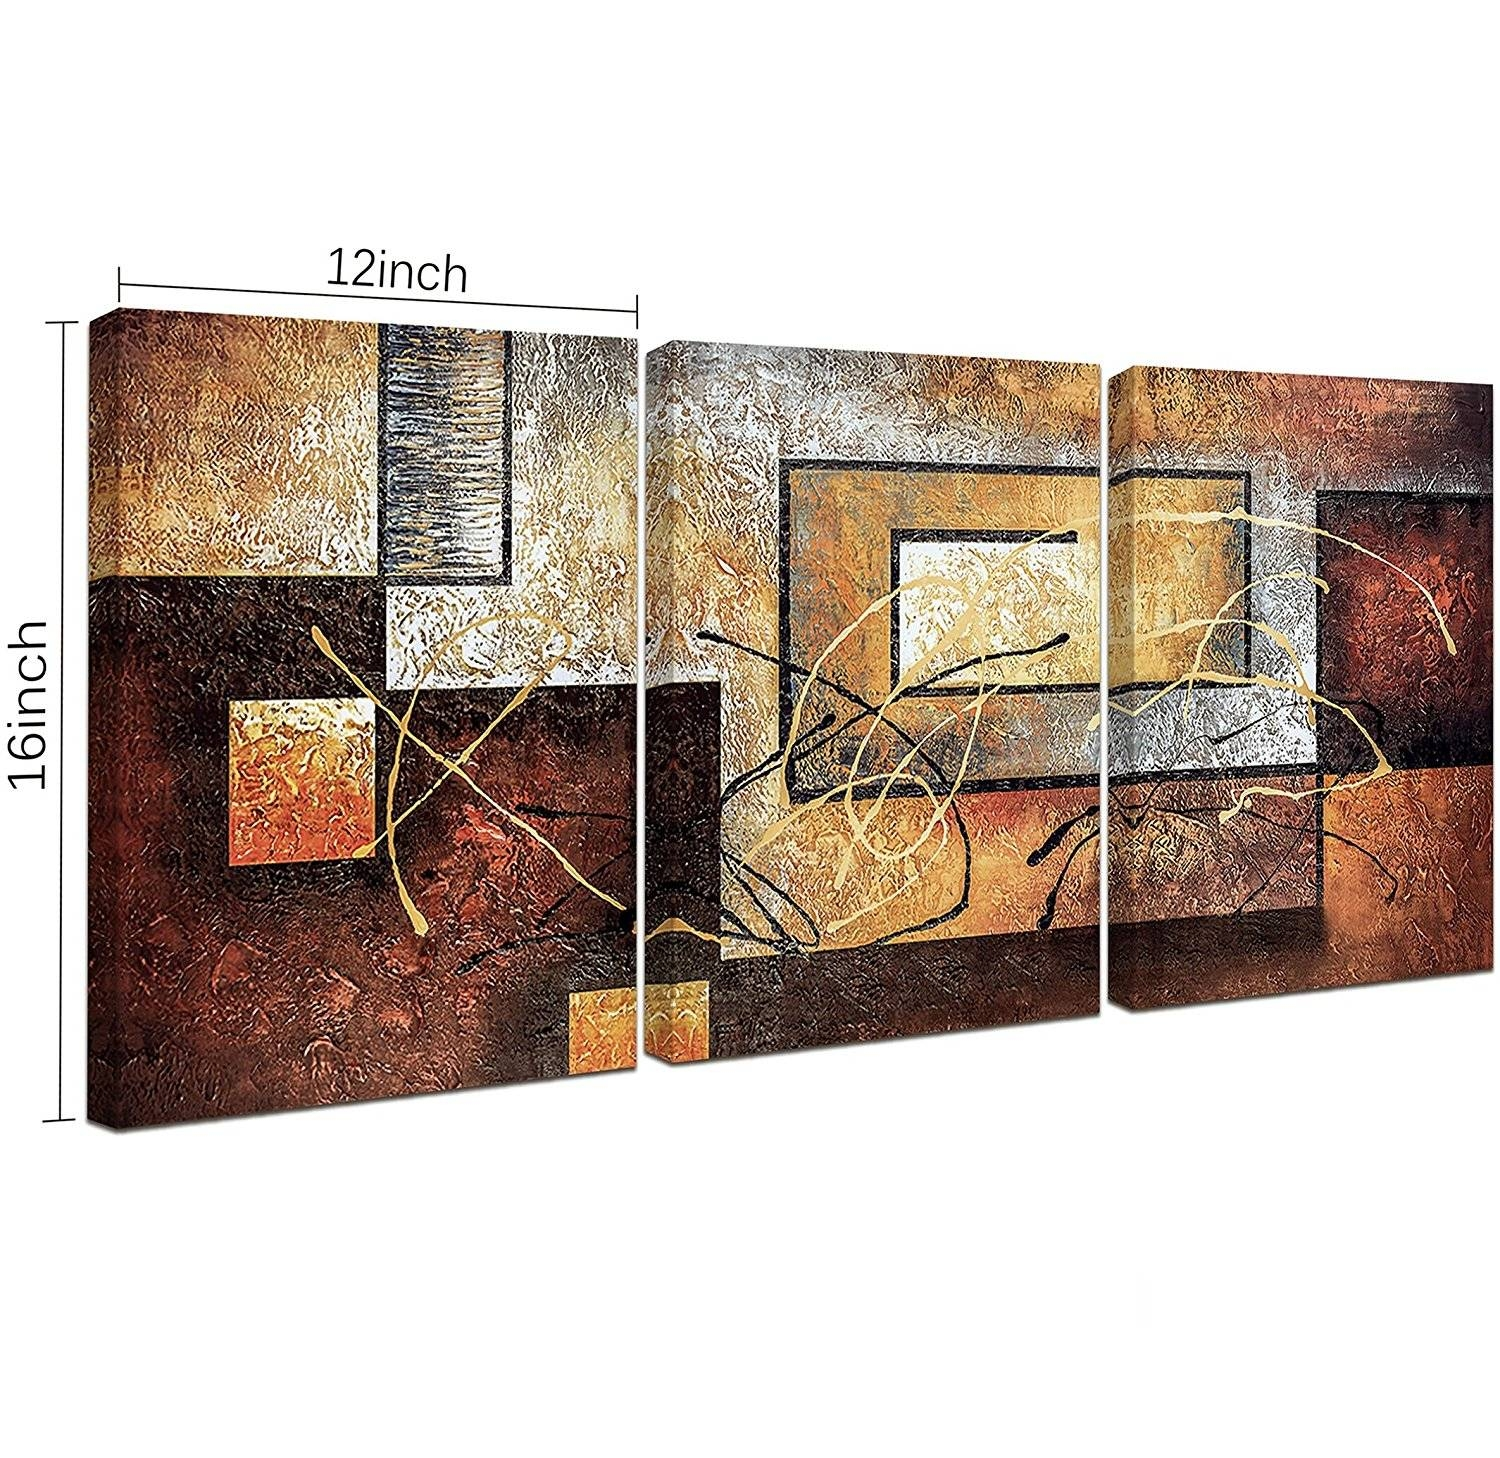 Kitchen : Wall Decor Stores Art Decor Mirror Wall Art Kitchen Wall Intended For 2018 Large Wall Art For Kitchen (Gallery 18 of 20)